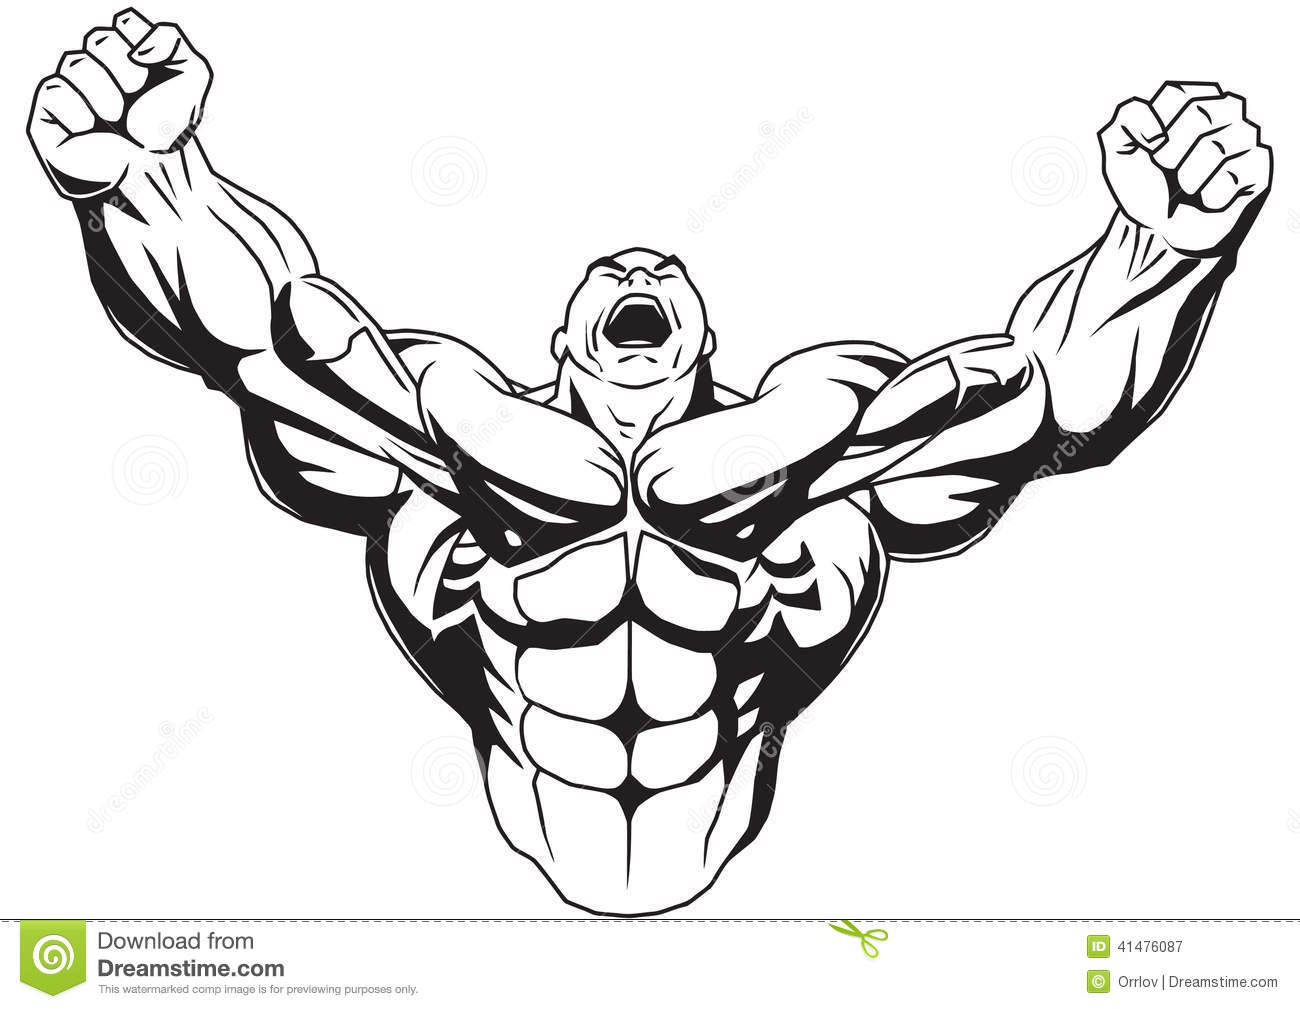 Black muscular guy clipart jpg black and white download Muscle Man Clipart | Free download best Muscle Man Clipart on ... jpg black and white download